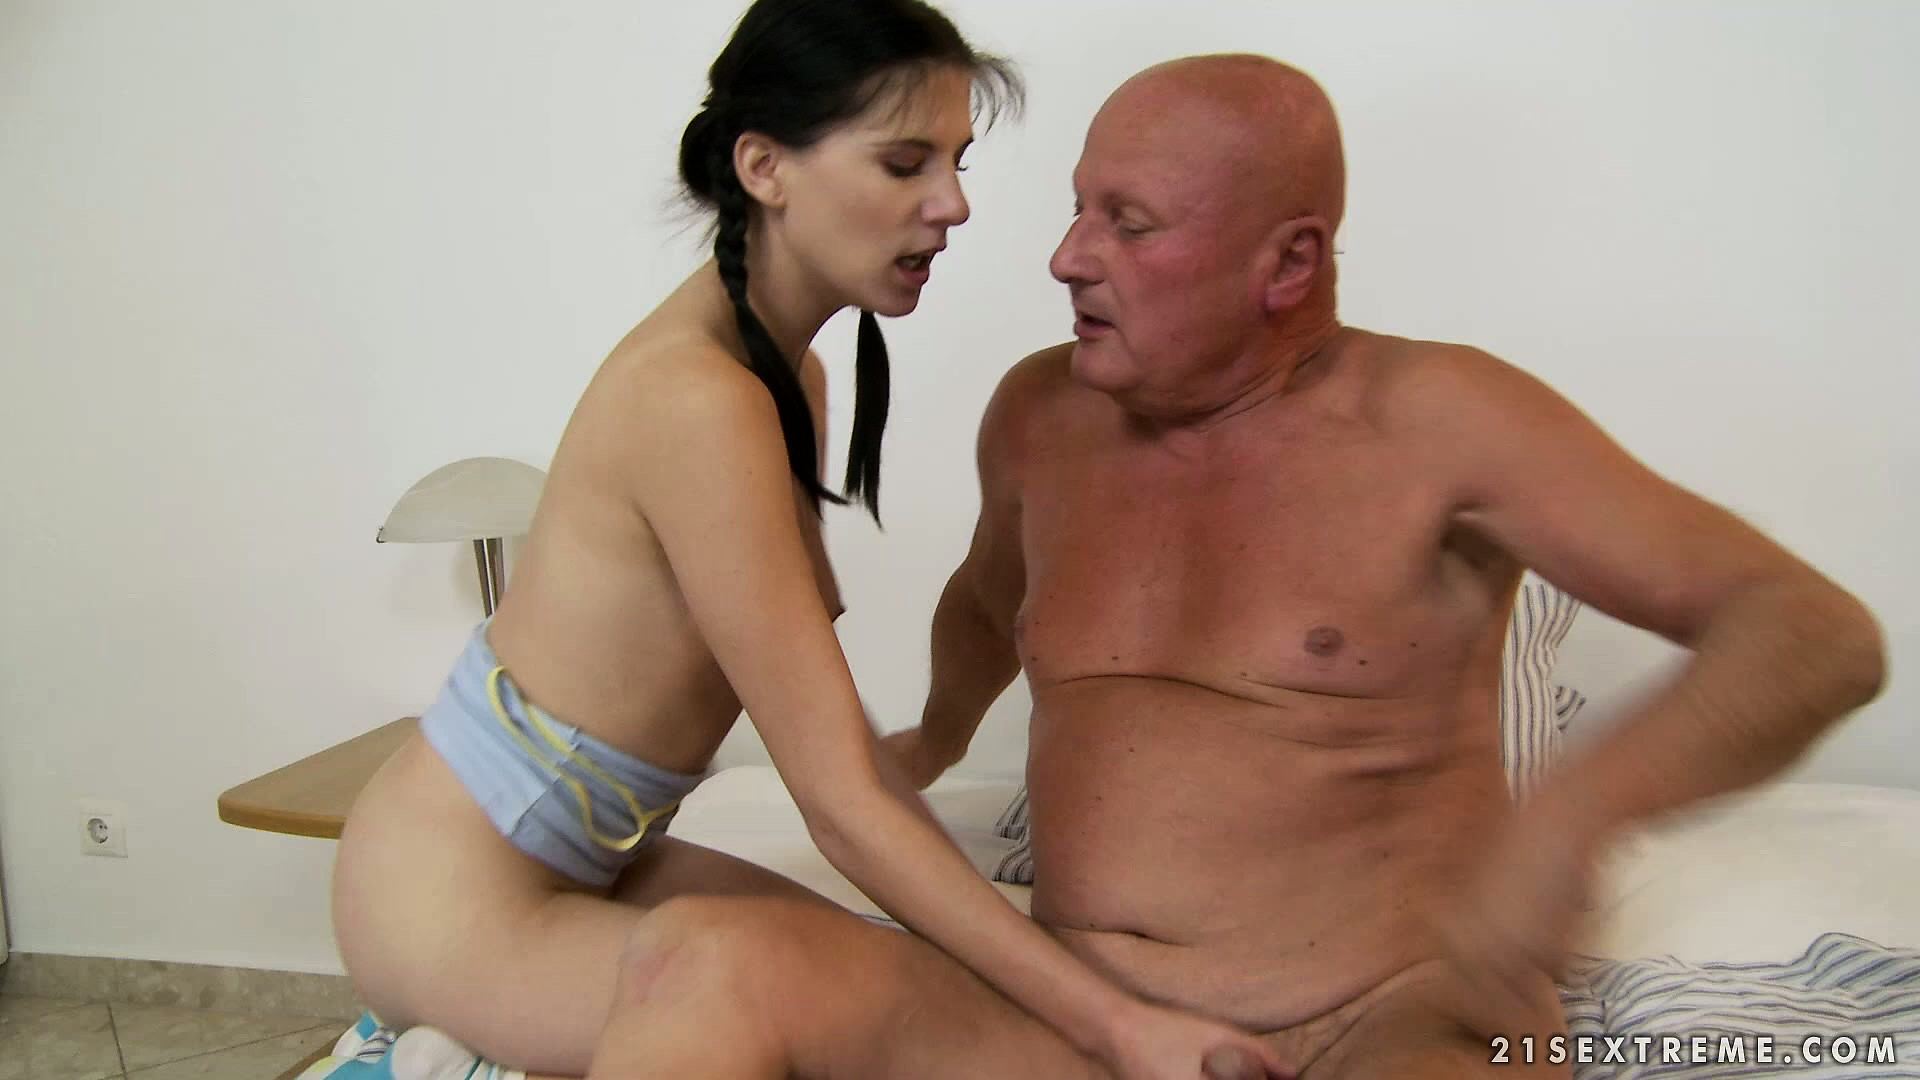 Porn Tube of Naughty Young Brunette In Pigtails Sucks And Fucks Bald Old Man